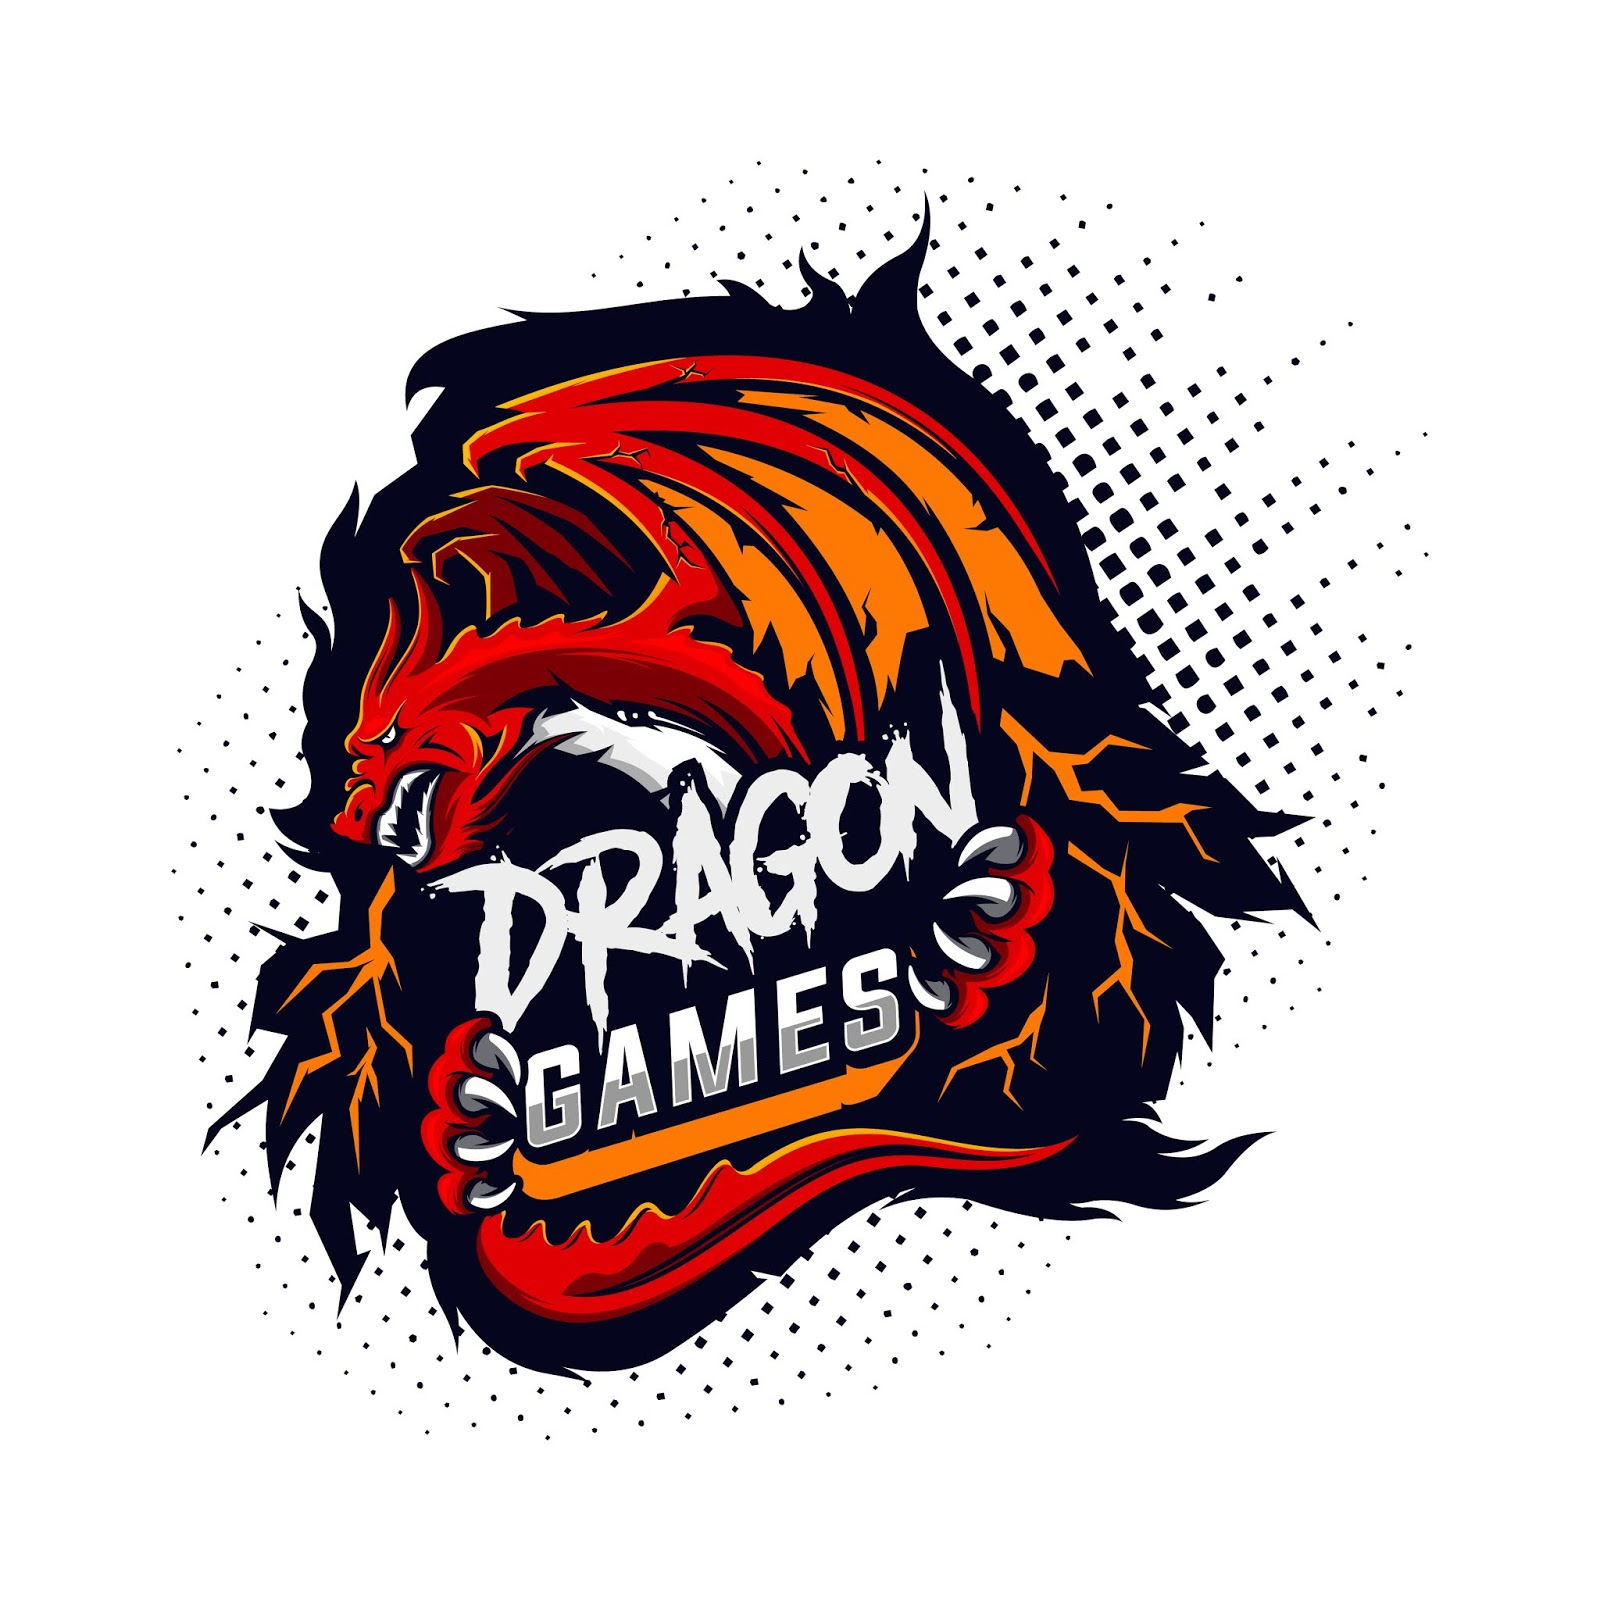 Dragon Gaming Logo Free Download Vector CDR, AI, EPS and PNG Formats